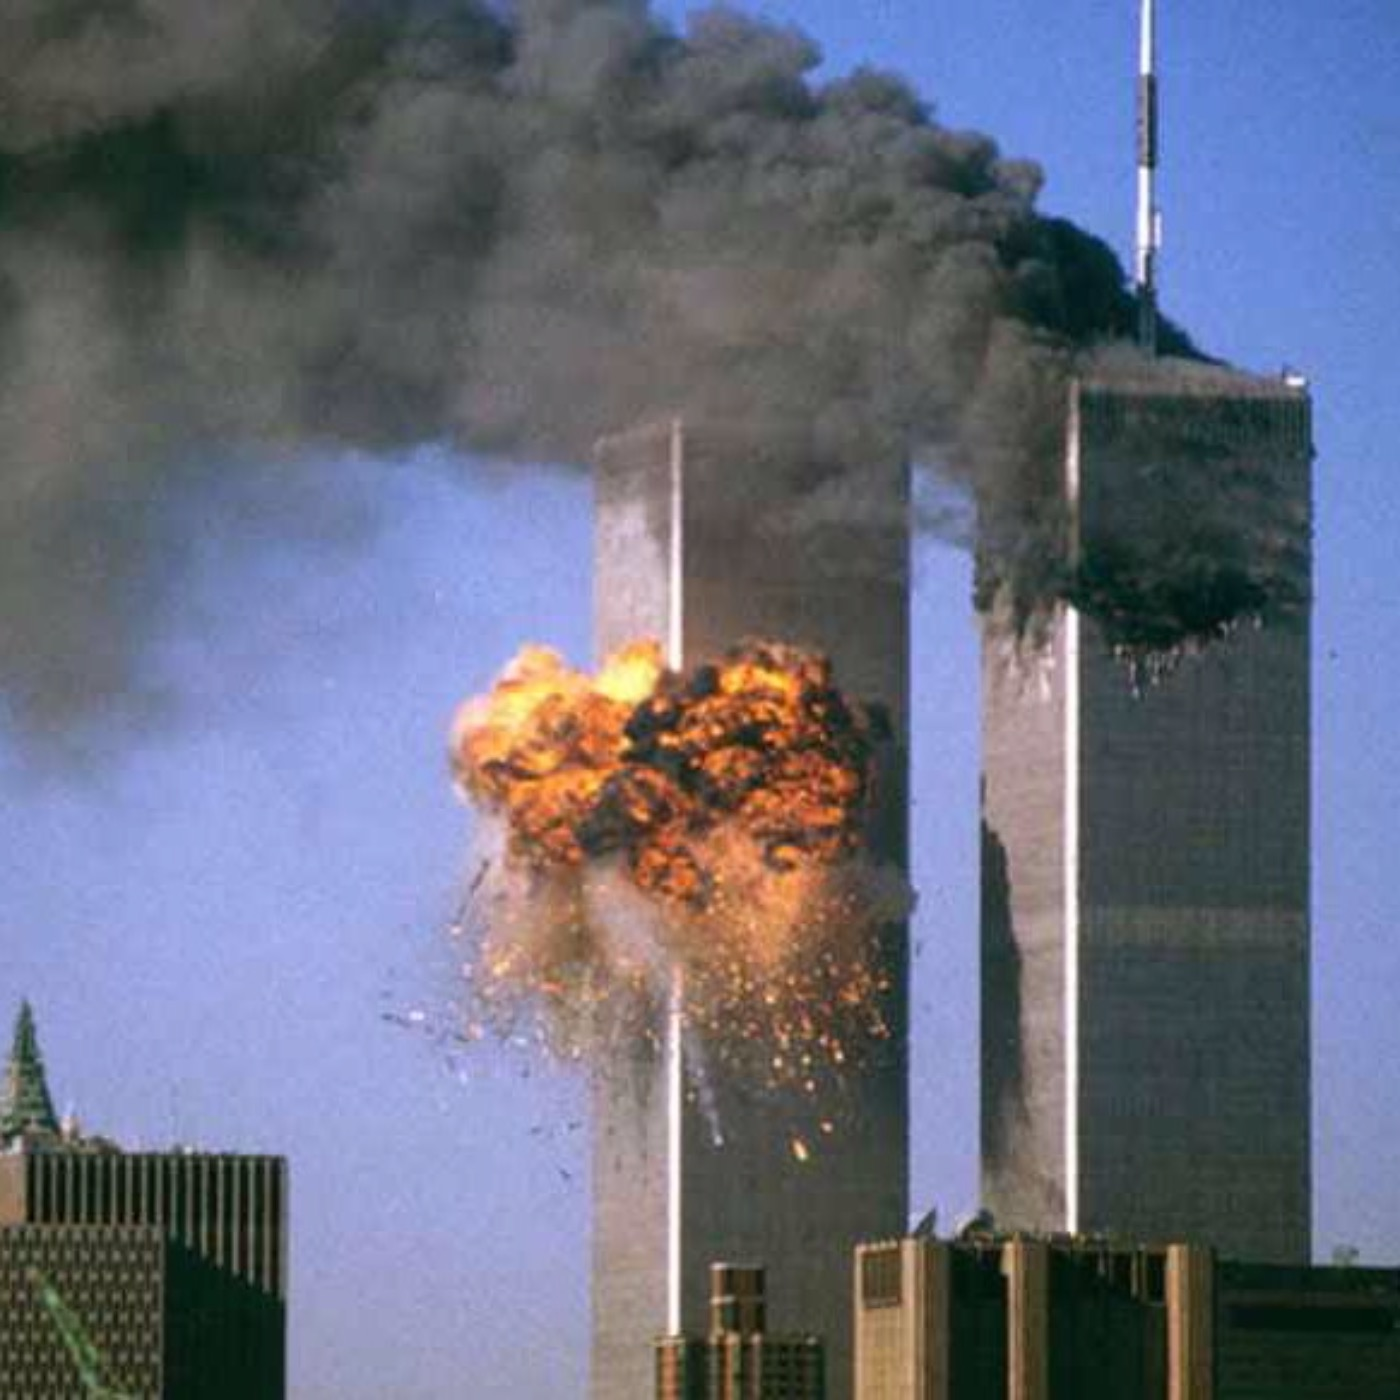 NYPD stories from daily life & responding to September 11, 2001